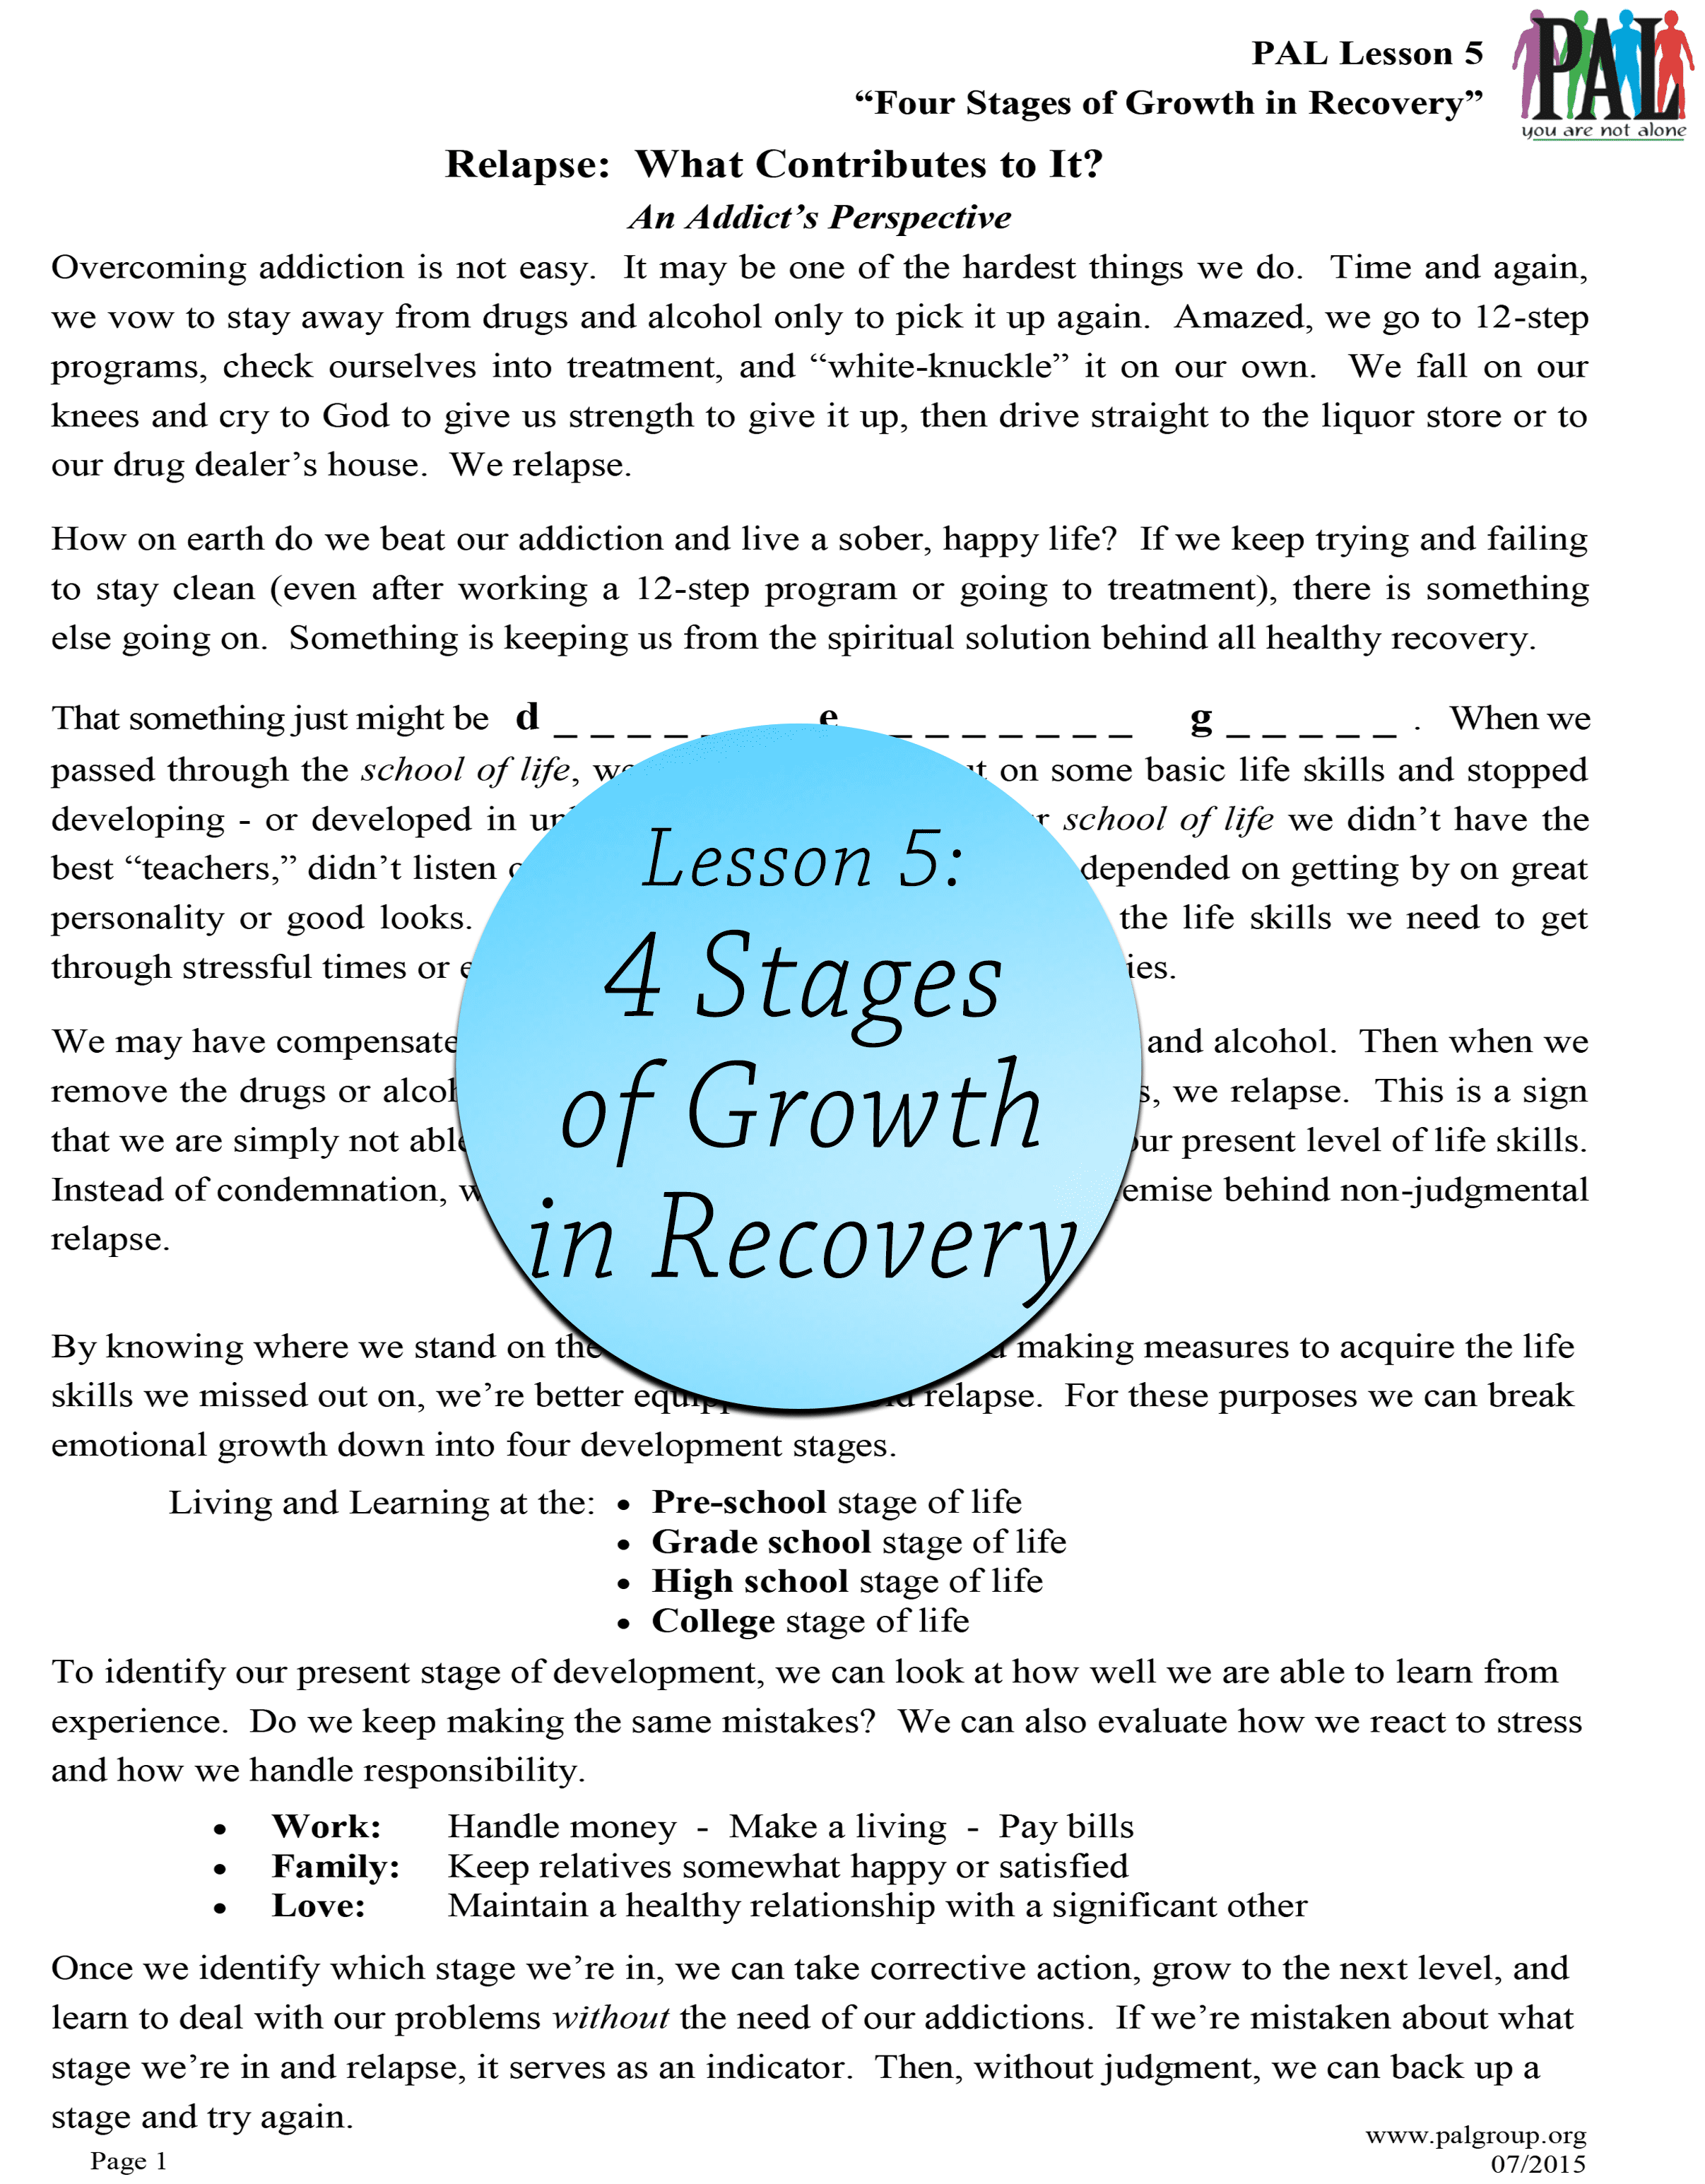 Lesson 5: 4 Stages of Growth in Recovery